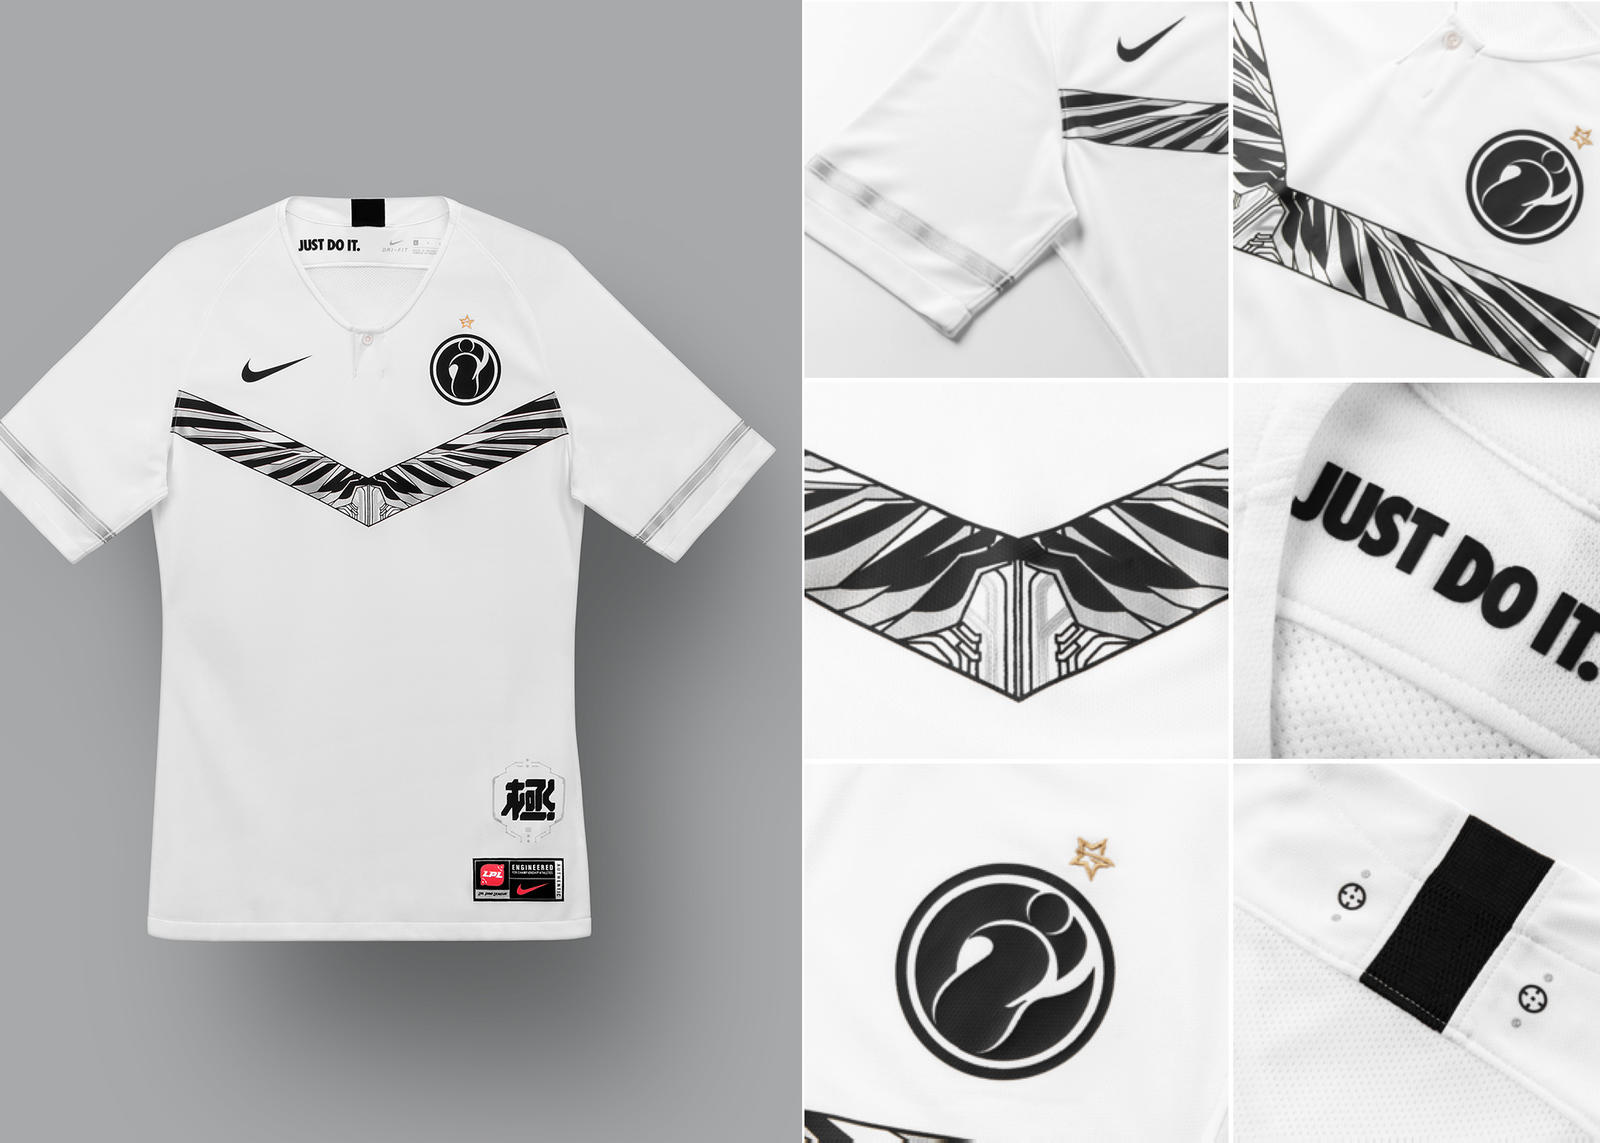 Nike League of Legends Pro League Team Kits 2019-20 Official Images 0